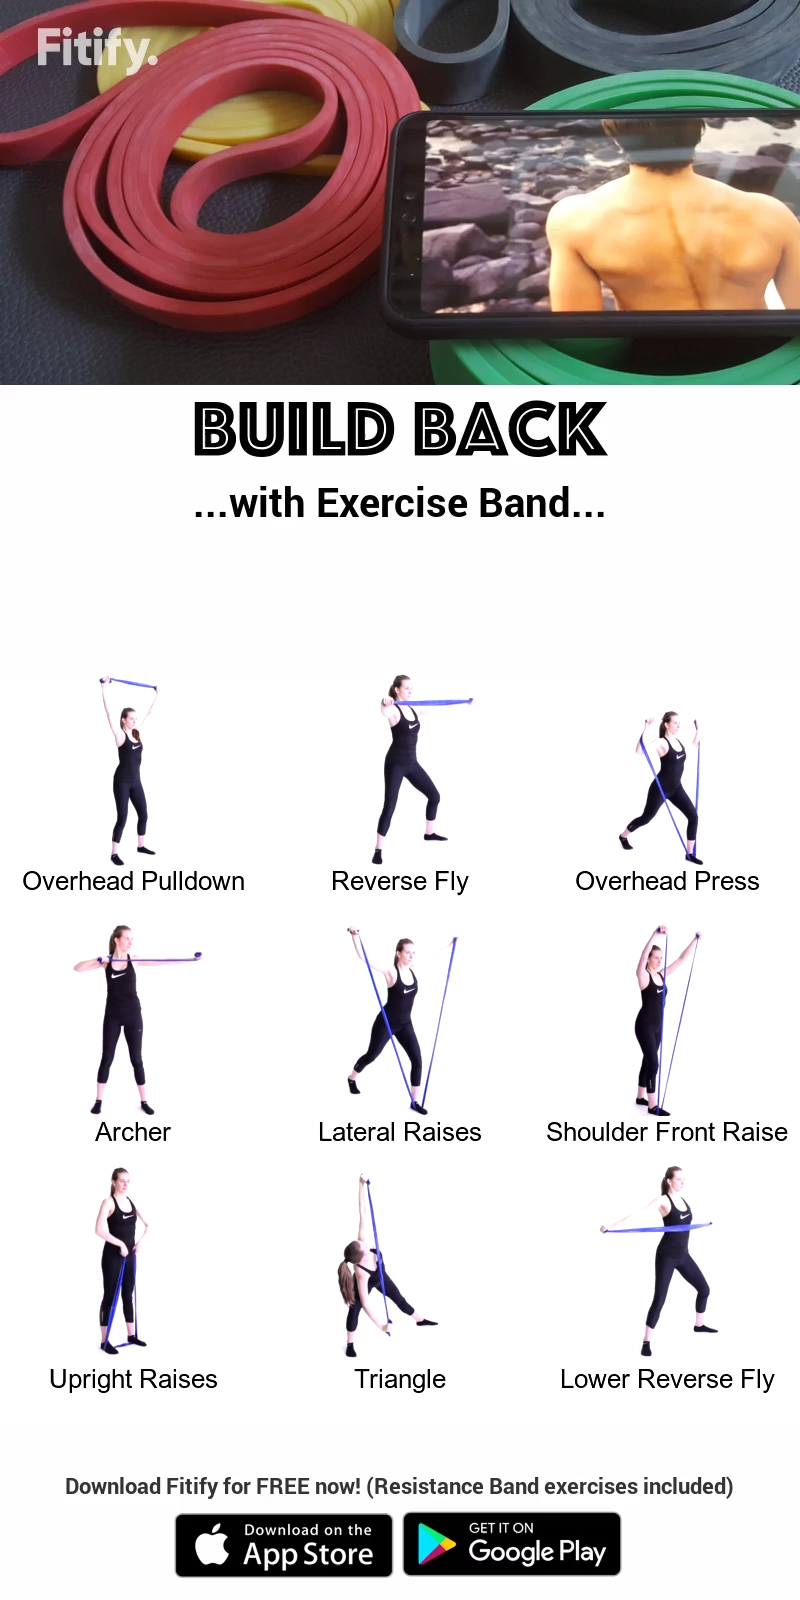 Race Training Resistance Exercises Resistance Band Exercises For